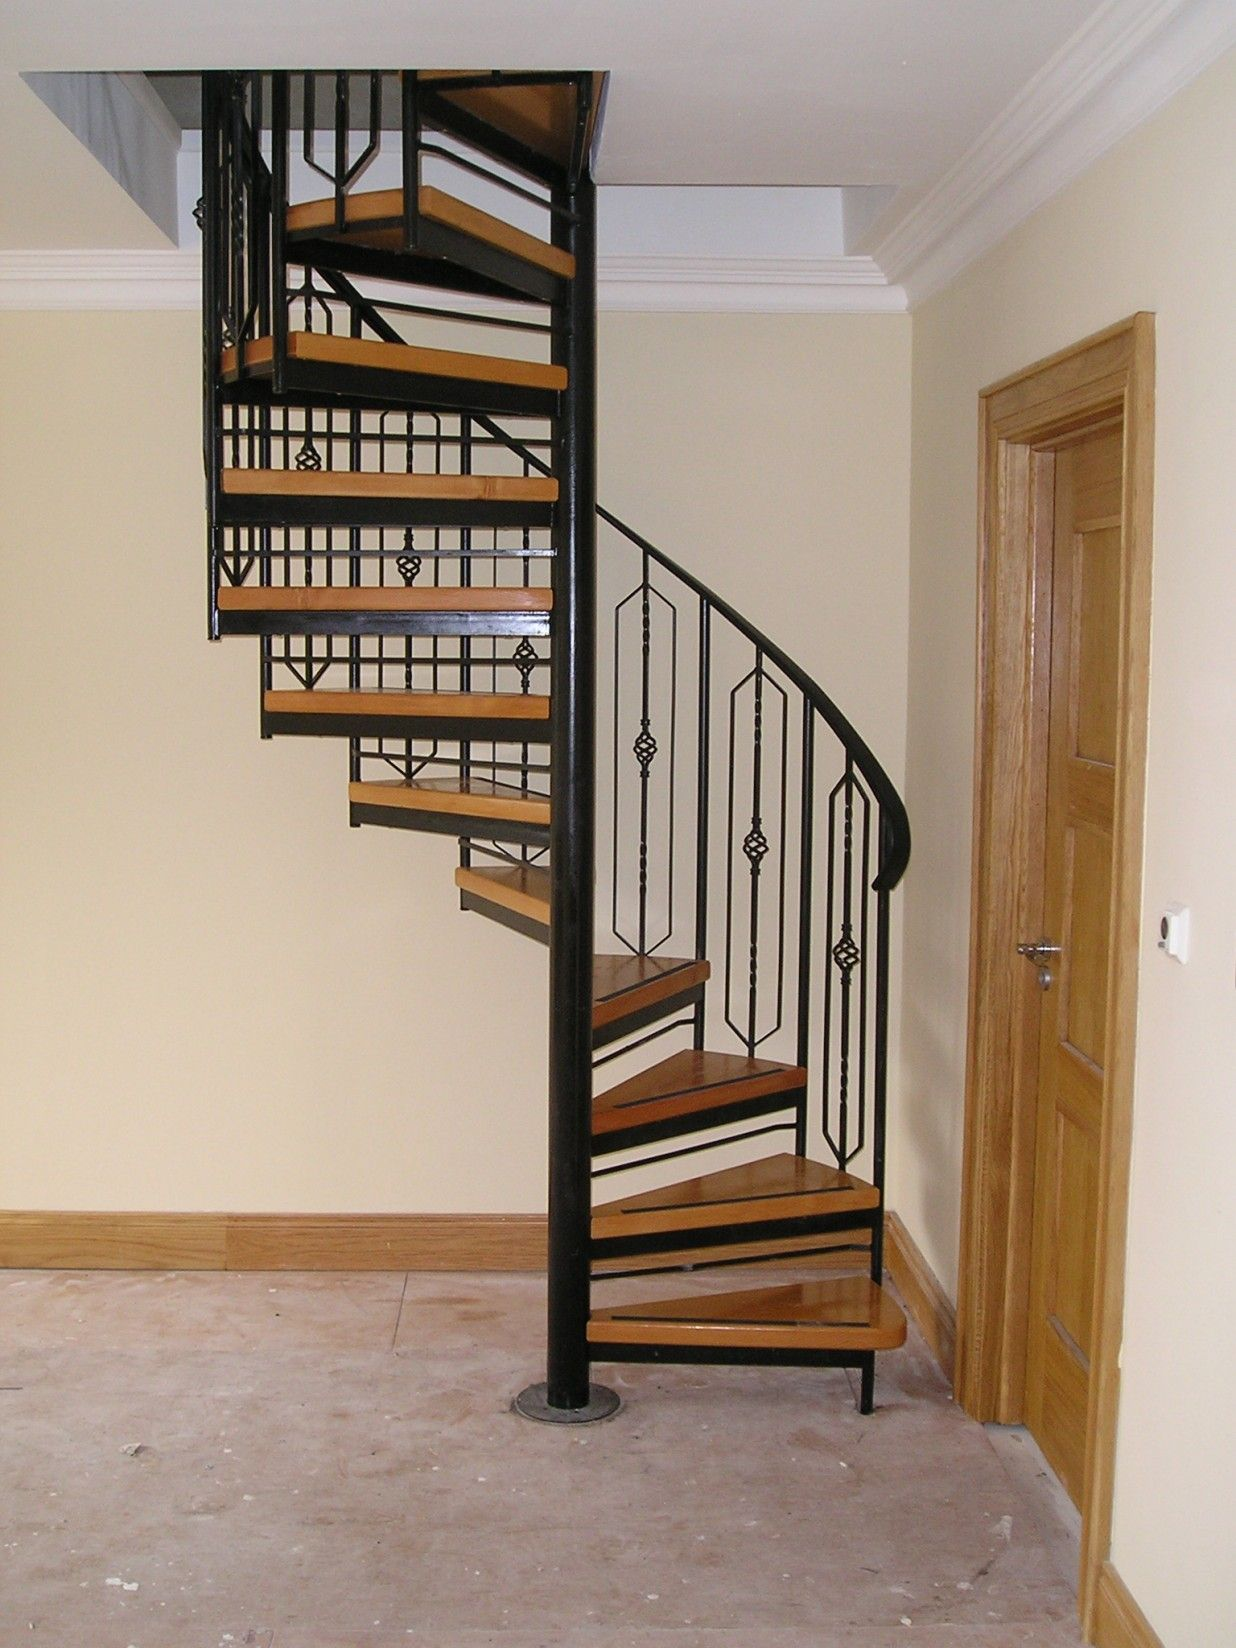 Spiral Staircase To Basement Top View Google Search